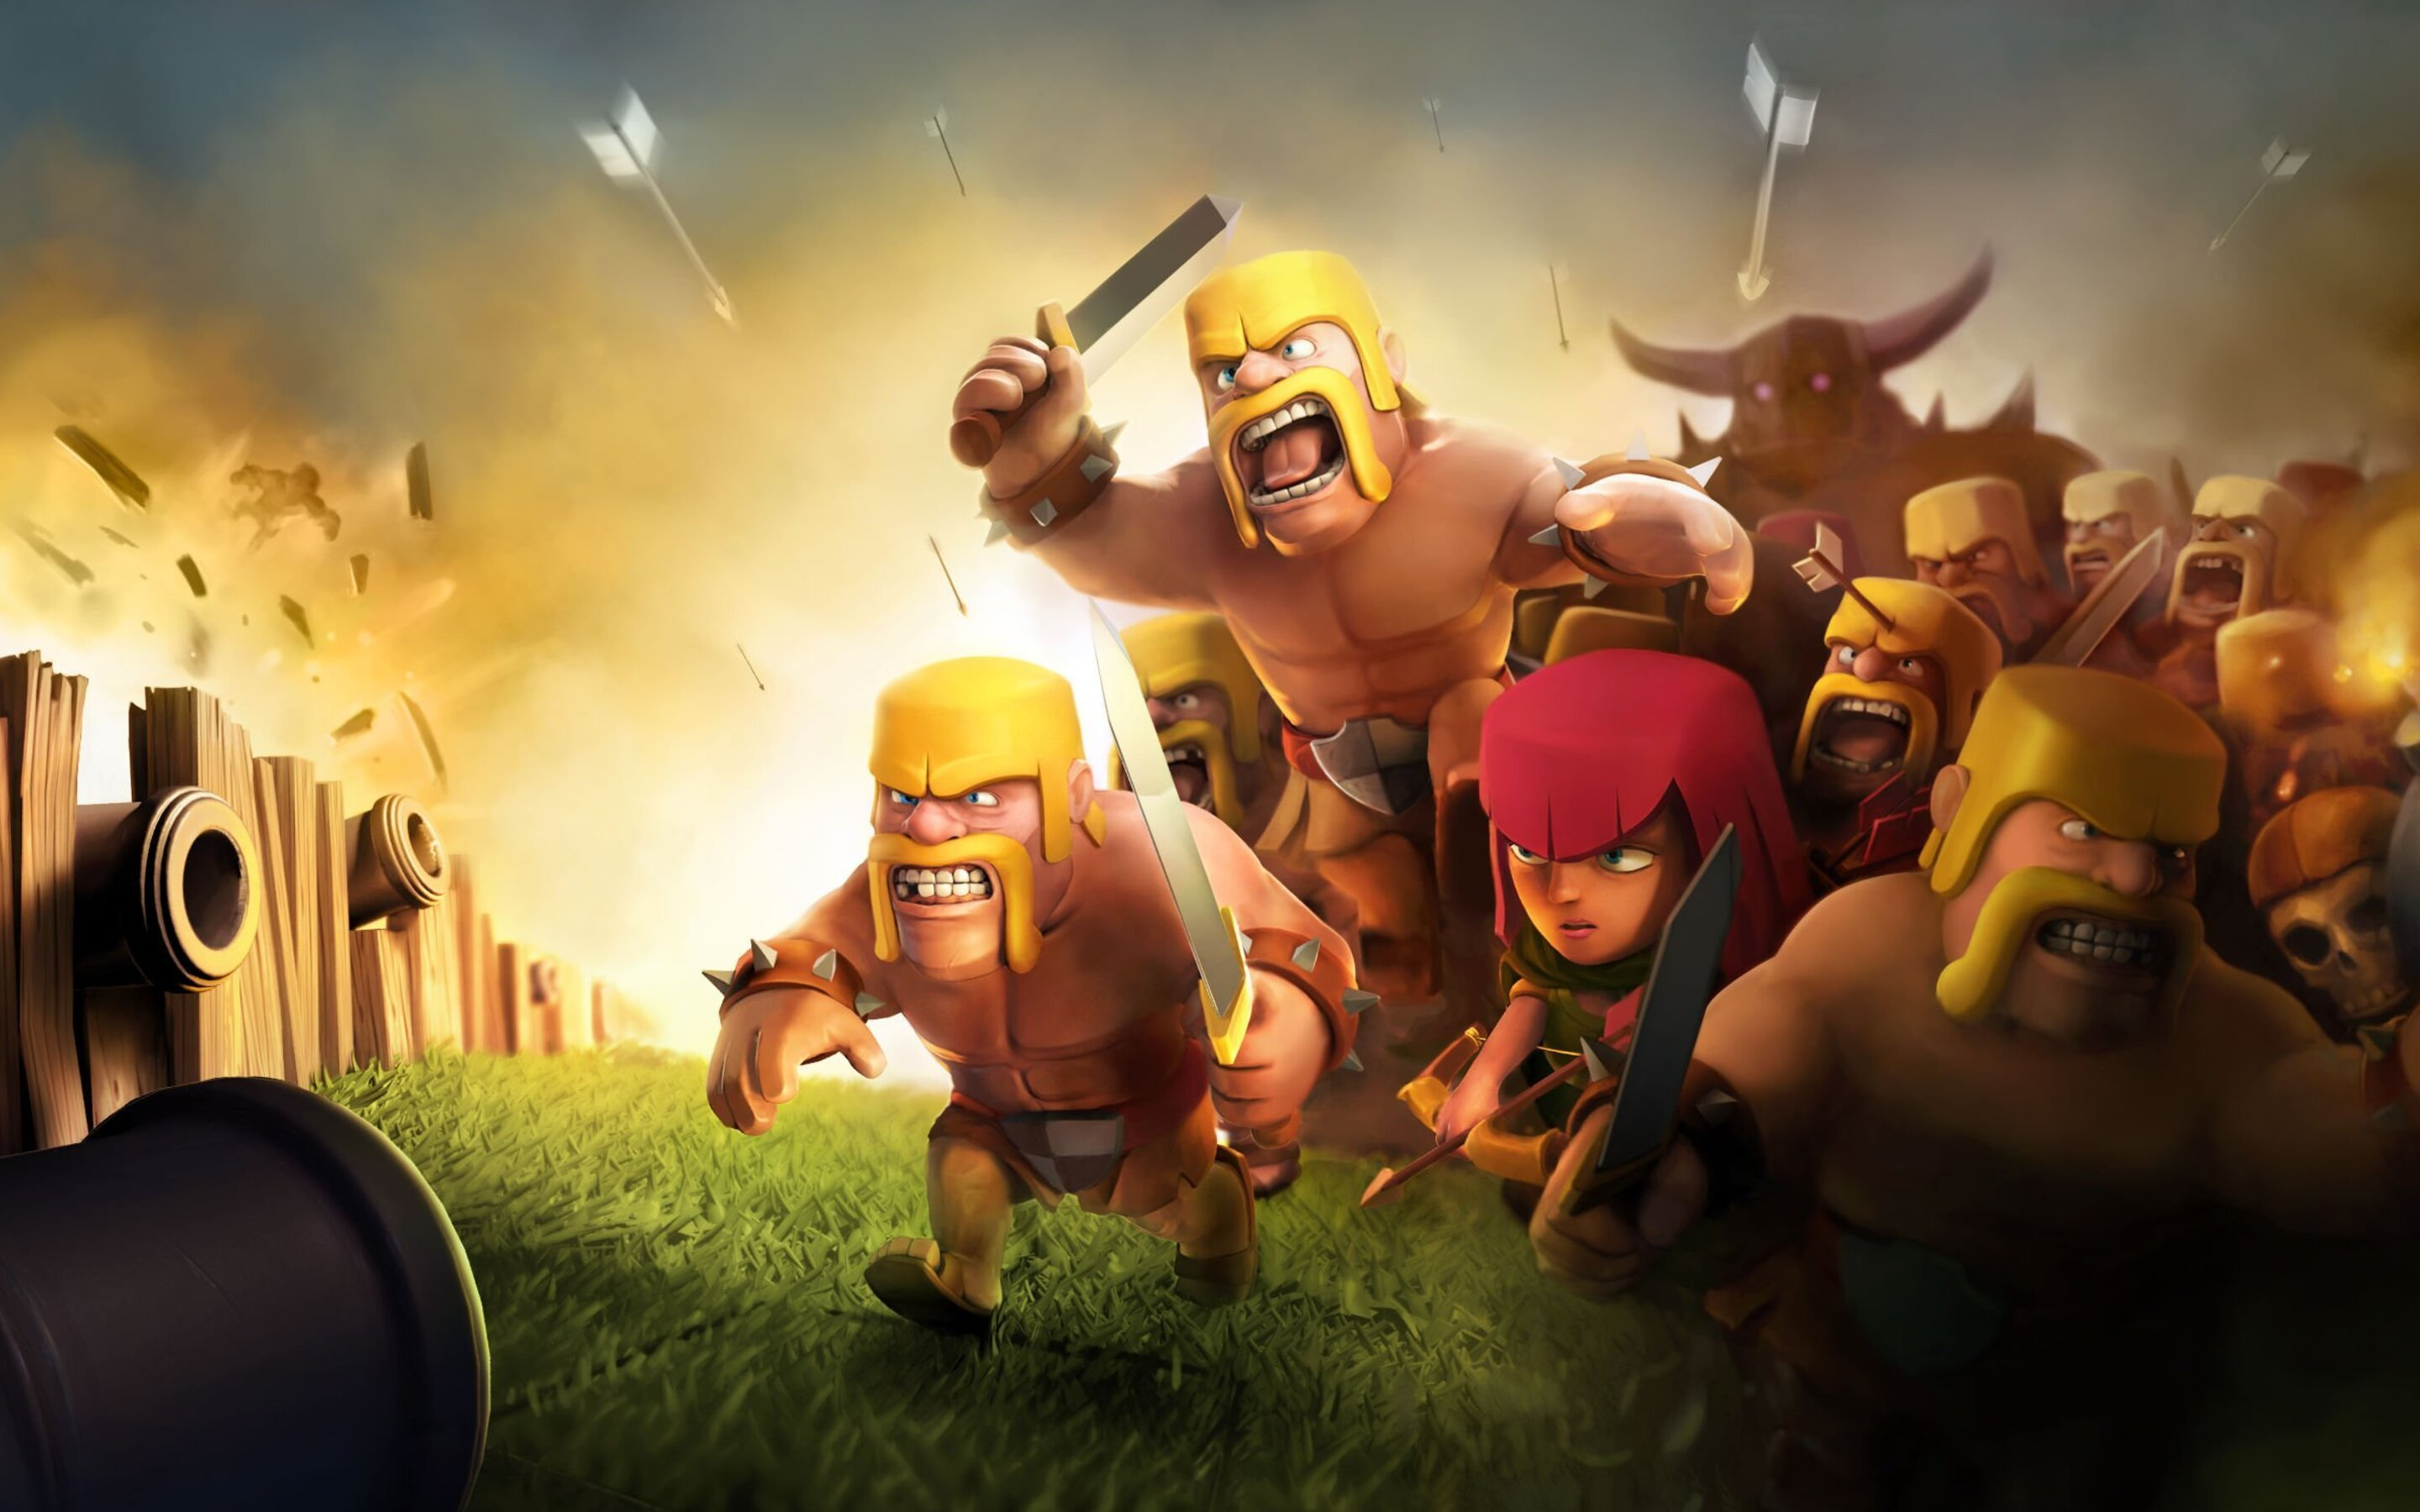 How to download clash royale and clash of clans on macbook free.